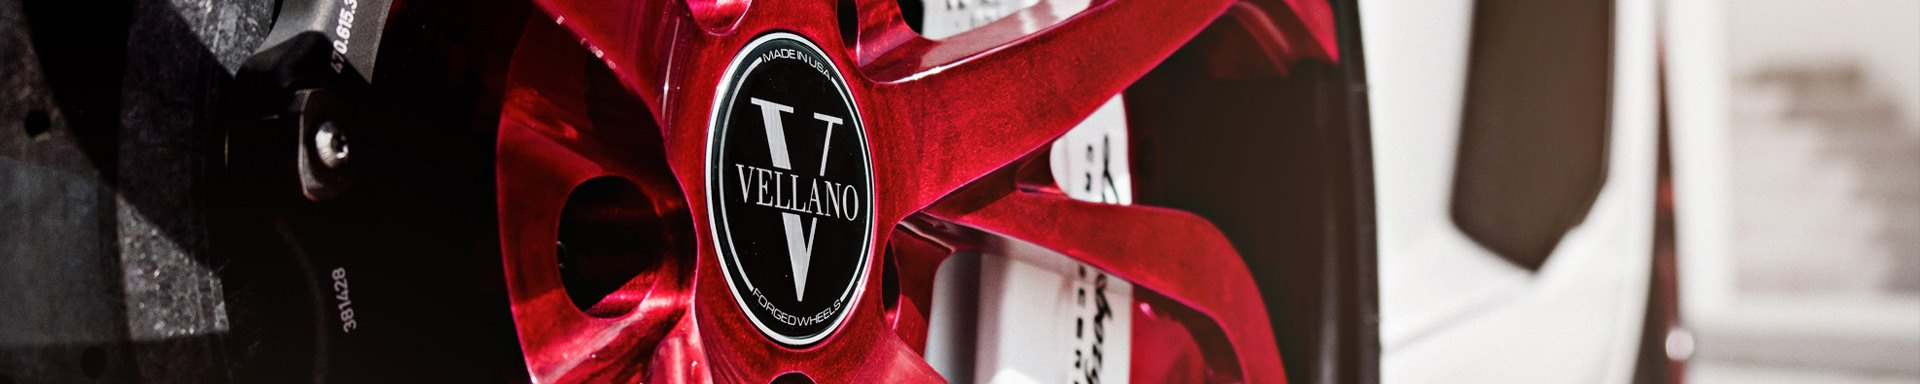 Universal VELLANO CUSTOM WHEELS